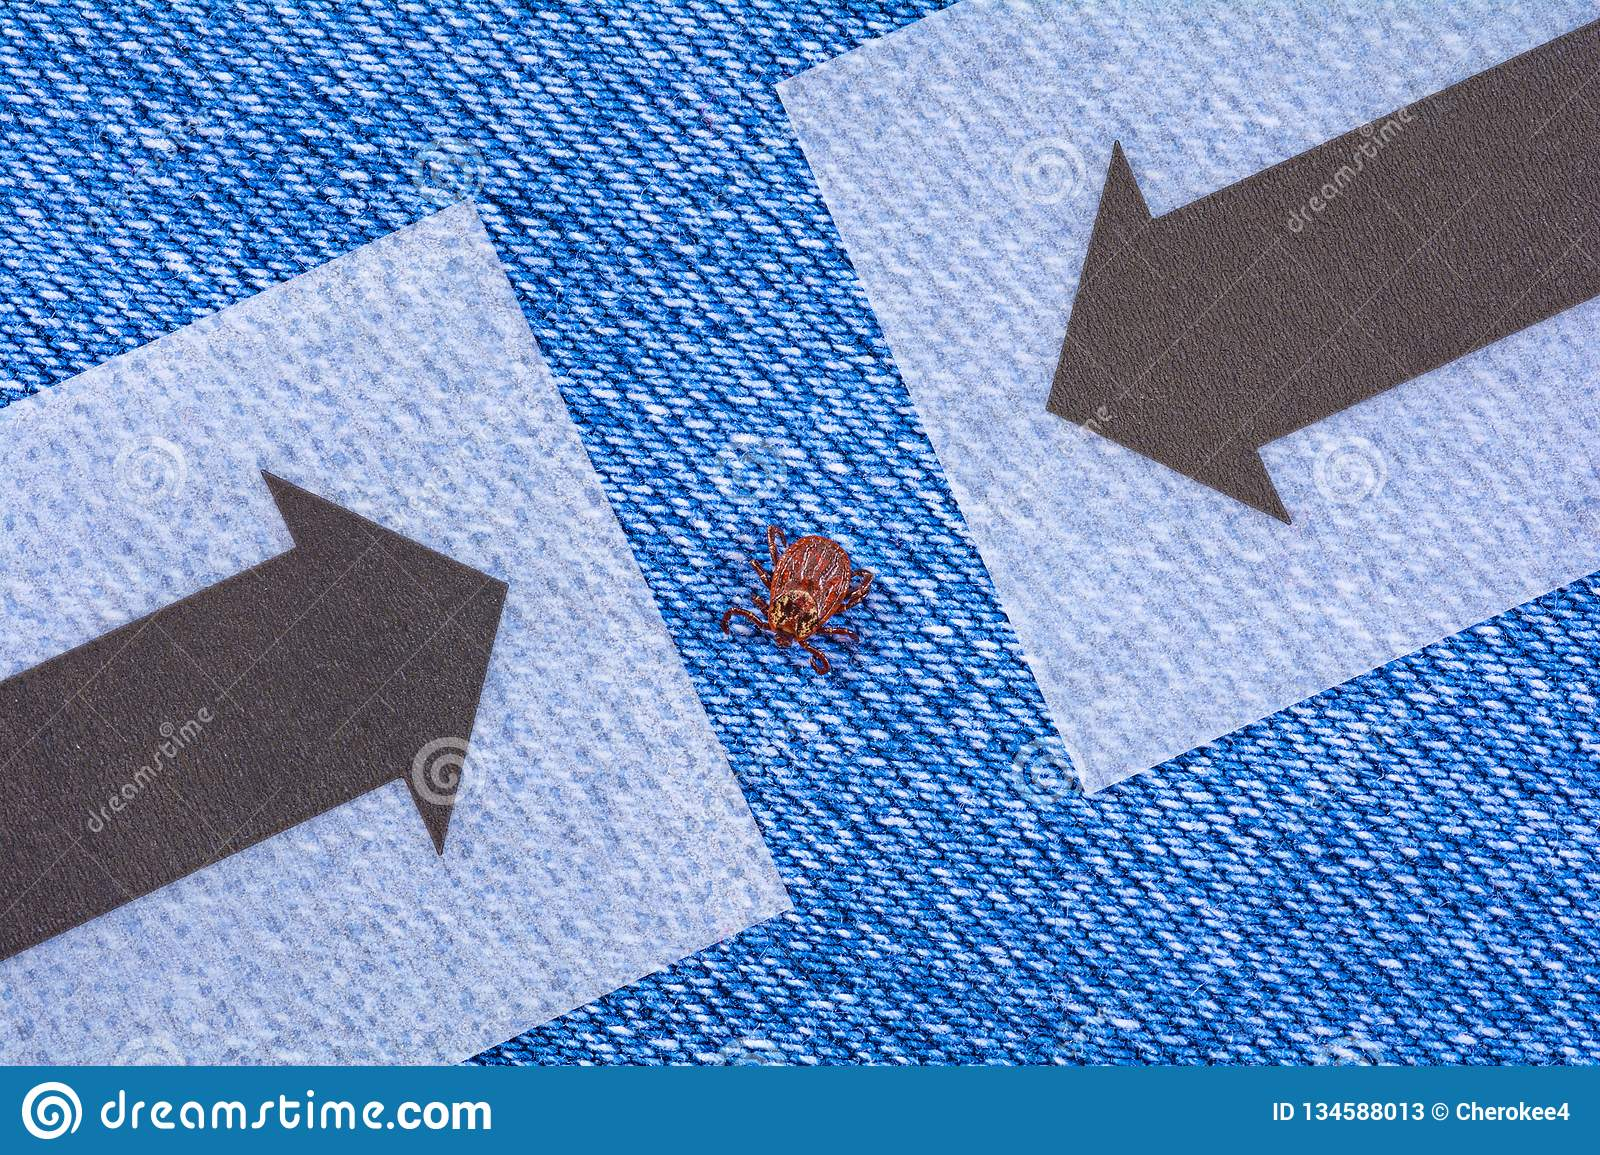 Parasite mite sitting on a jeans. Danger of tick bite.